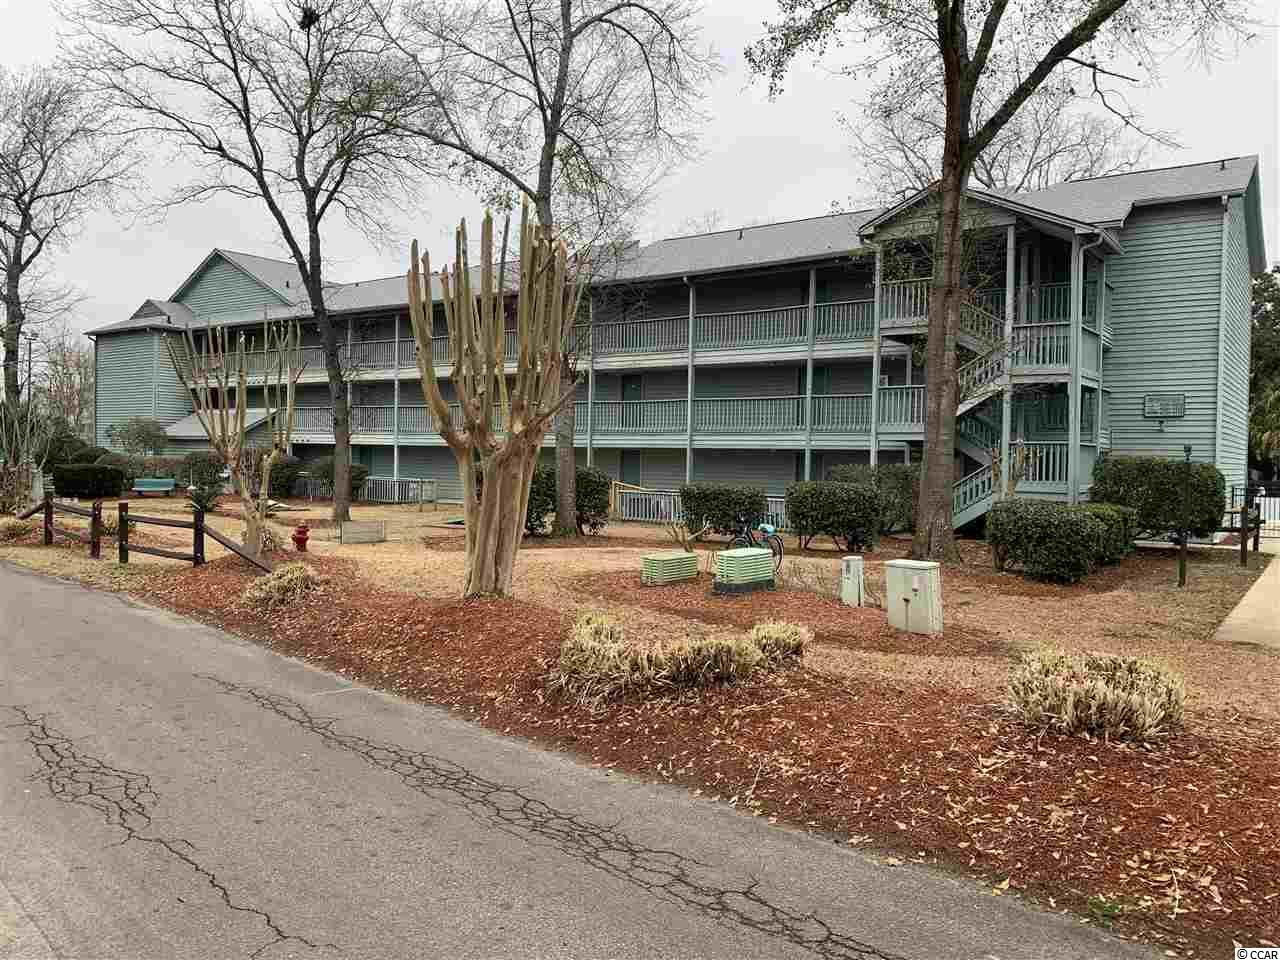 This condo is a chance to own a piece of the beach at a price you probably never thought possible. This true 1 bedroom condo comes fully furnished and sits in the desirable Myrtle Beach Resorts. Myrtle Beach Resorts is a gated community with plenty of amenities for both you and your guests. These amenities include 4 outdoor and two indoor pools, hot tubs, a lazy river, sauna, fitness rooms, arcade, tennis courts, bocce ball court, cornhole fields, playgrounds, a convenience store, poolside grill, and a oceanfront bar and restaurant, and more. You can spend your time at the resort or easily access all the Grand Strand has to offer because of its central location. This condo is an amazing value....Do not pass it up.